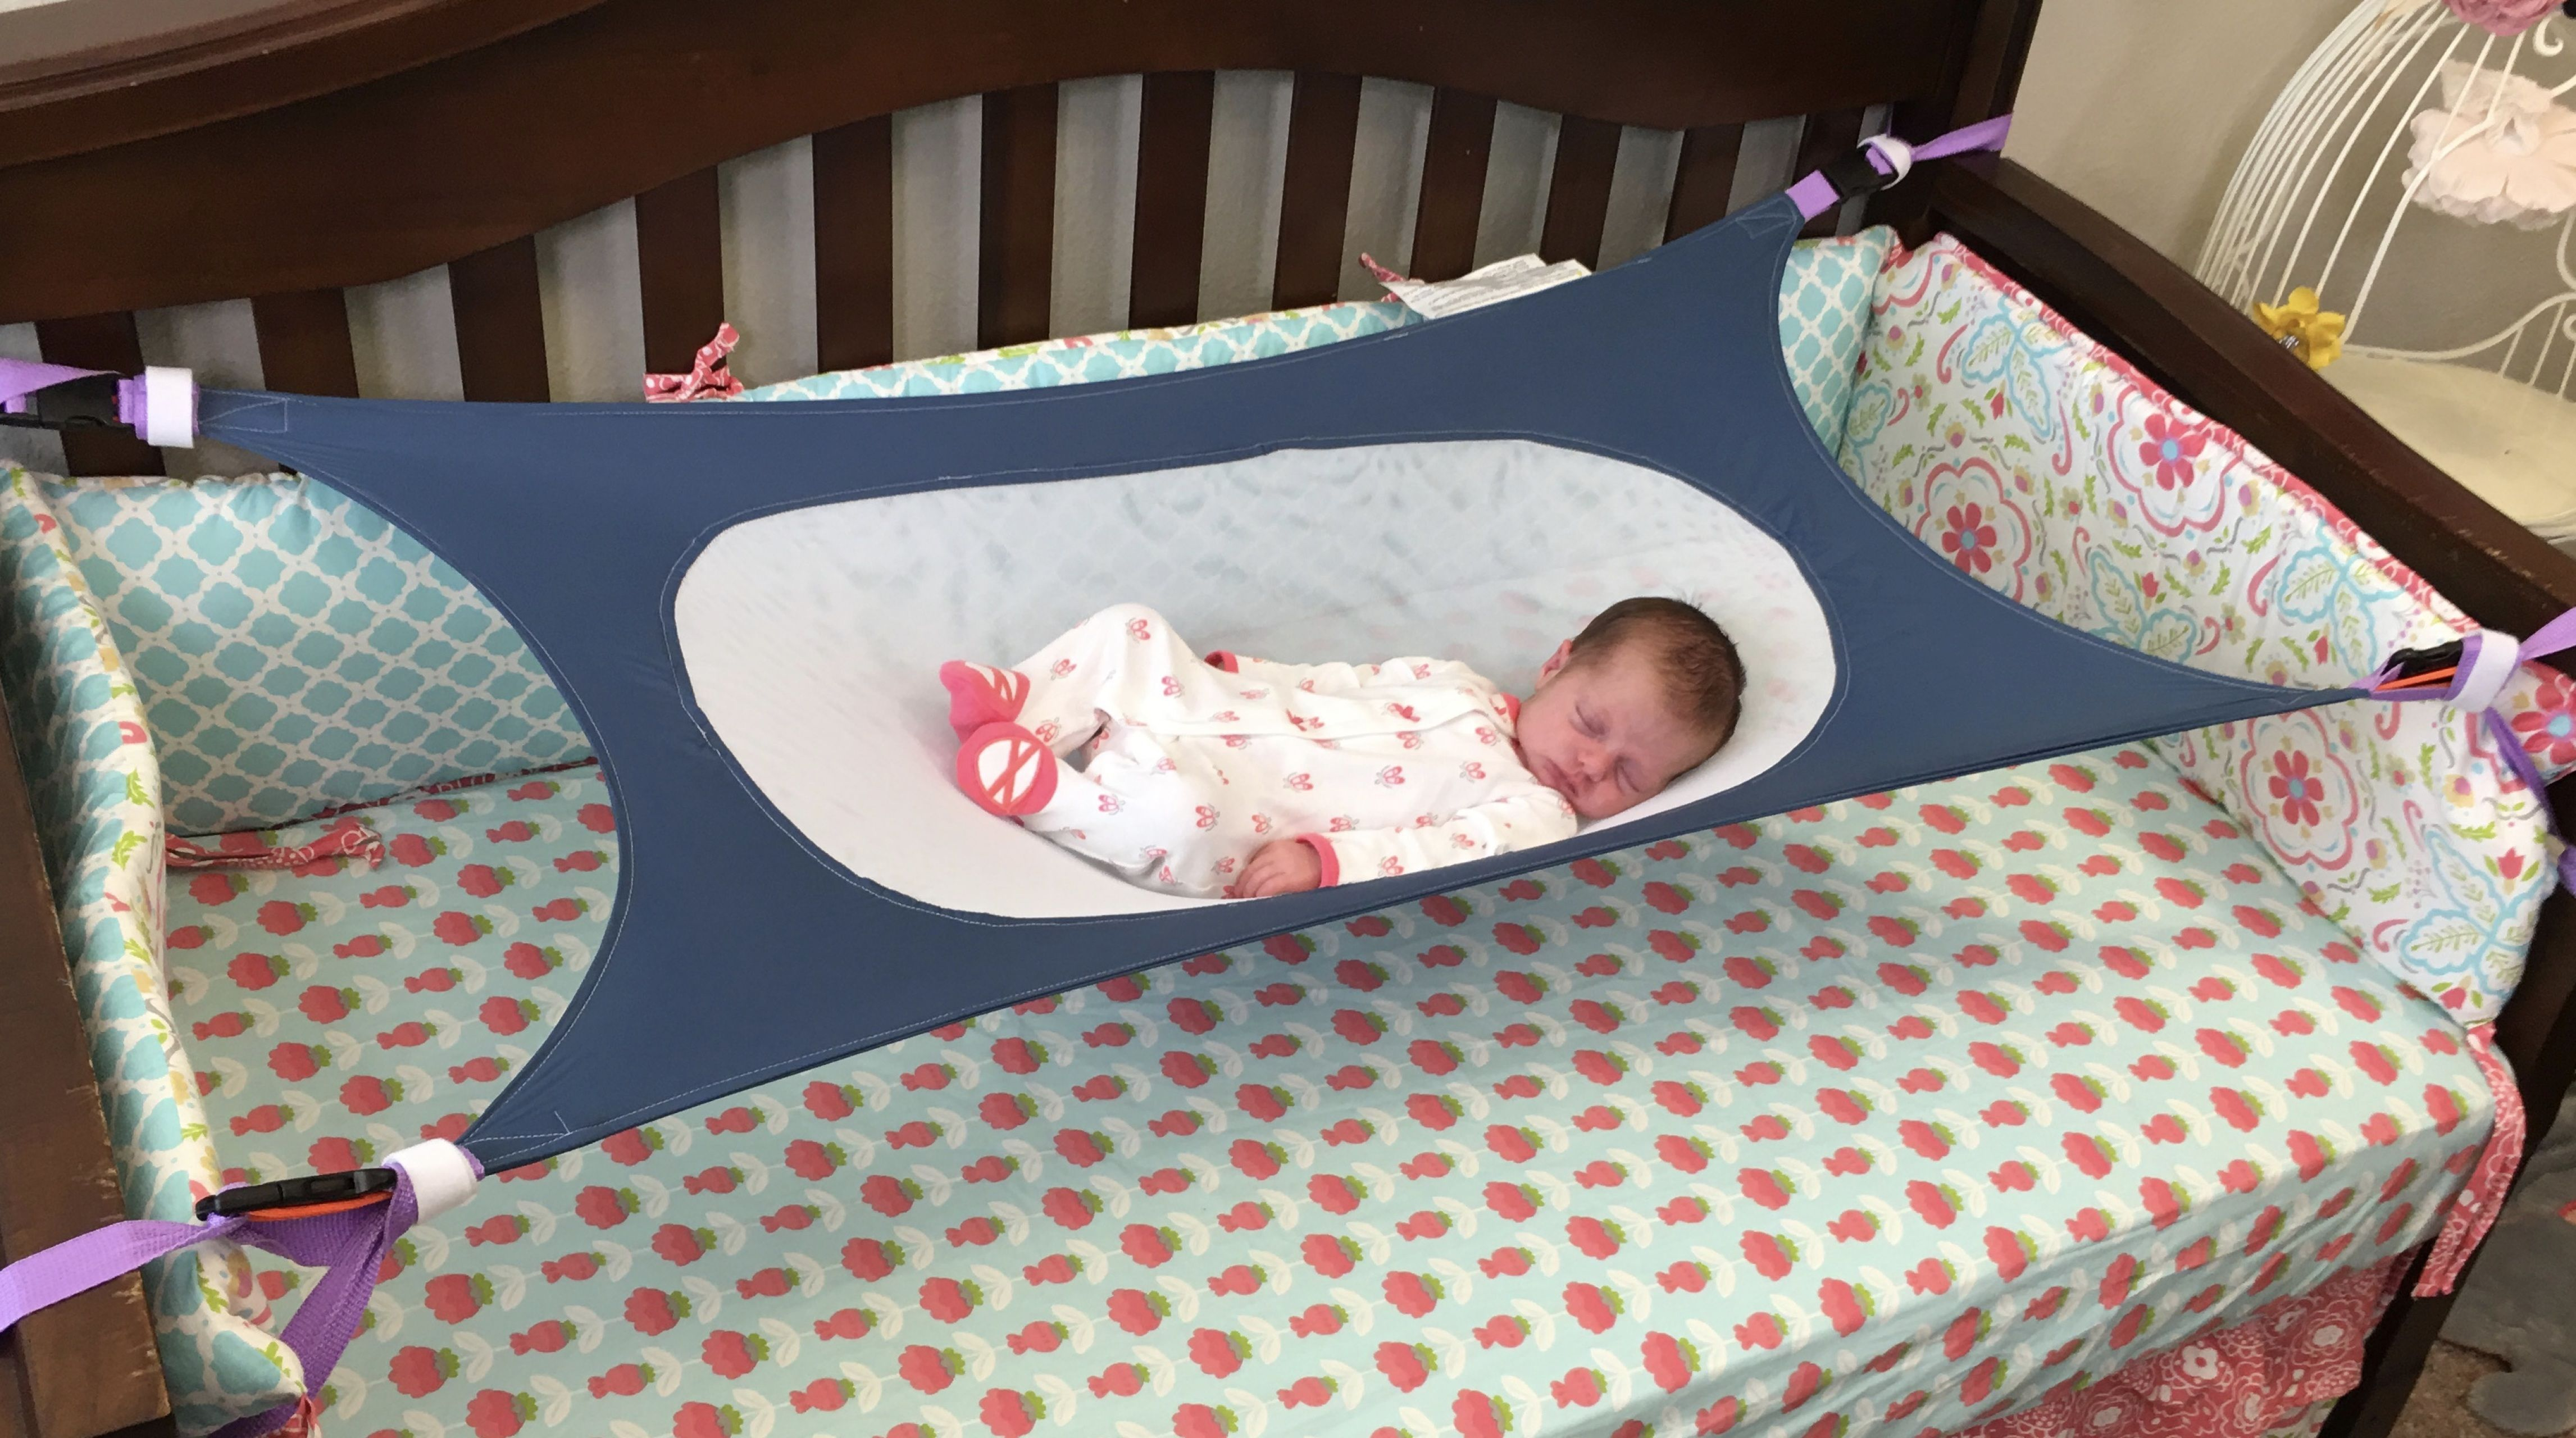 Crescent Womb Infant Safety Bed Safety And Comfort For